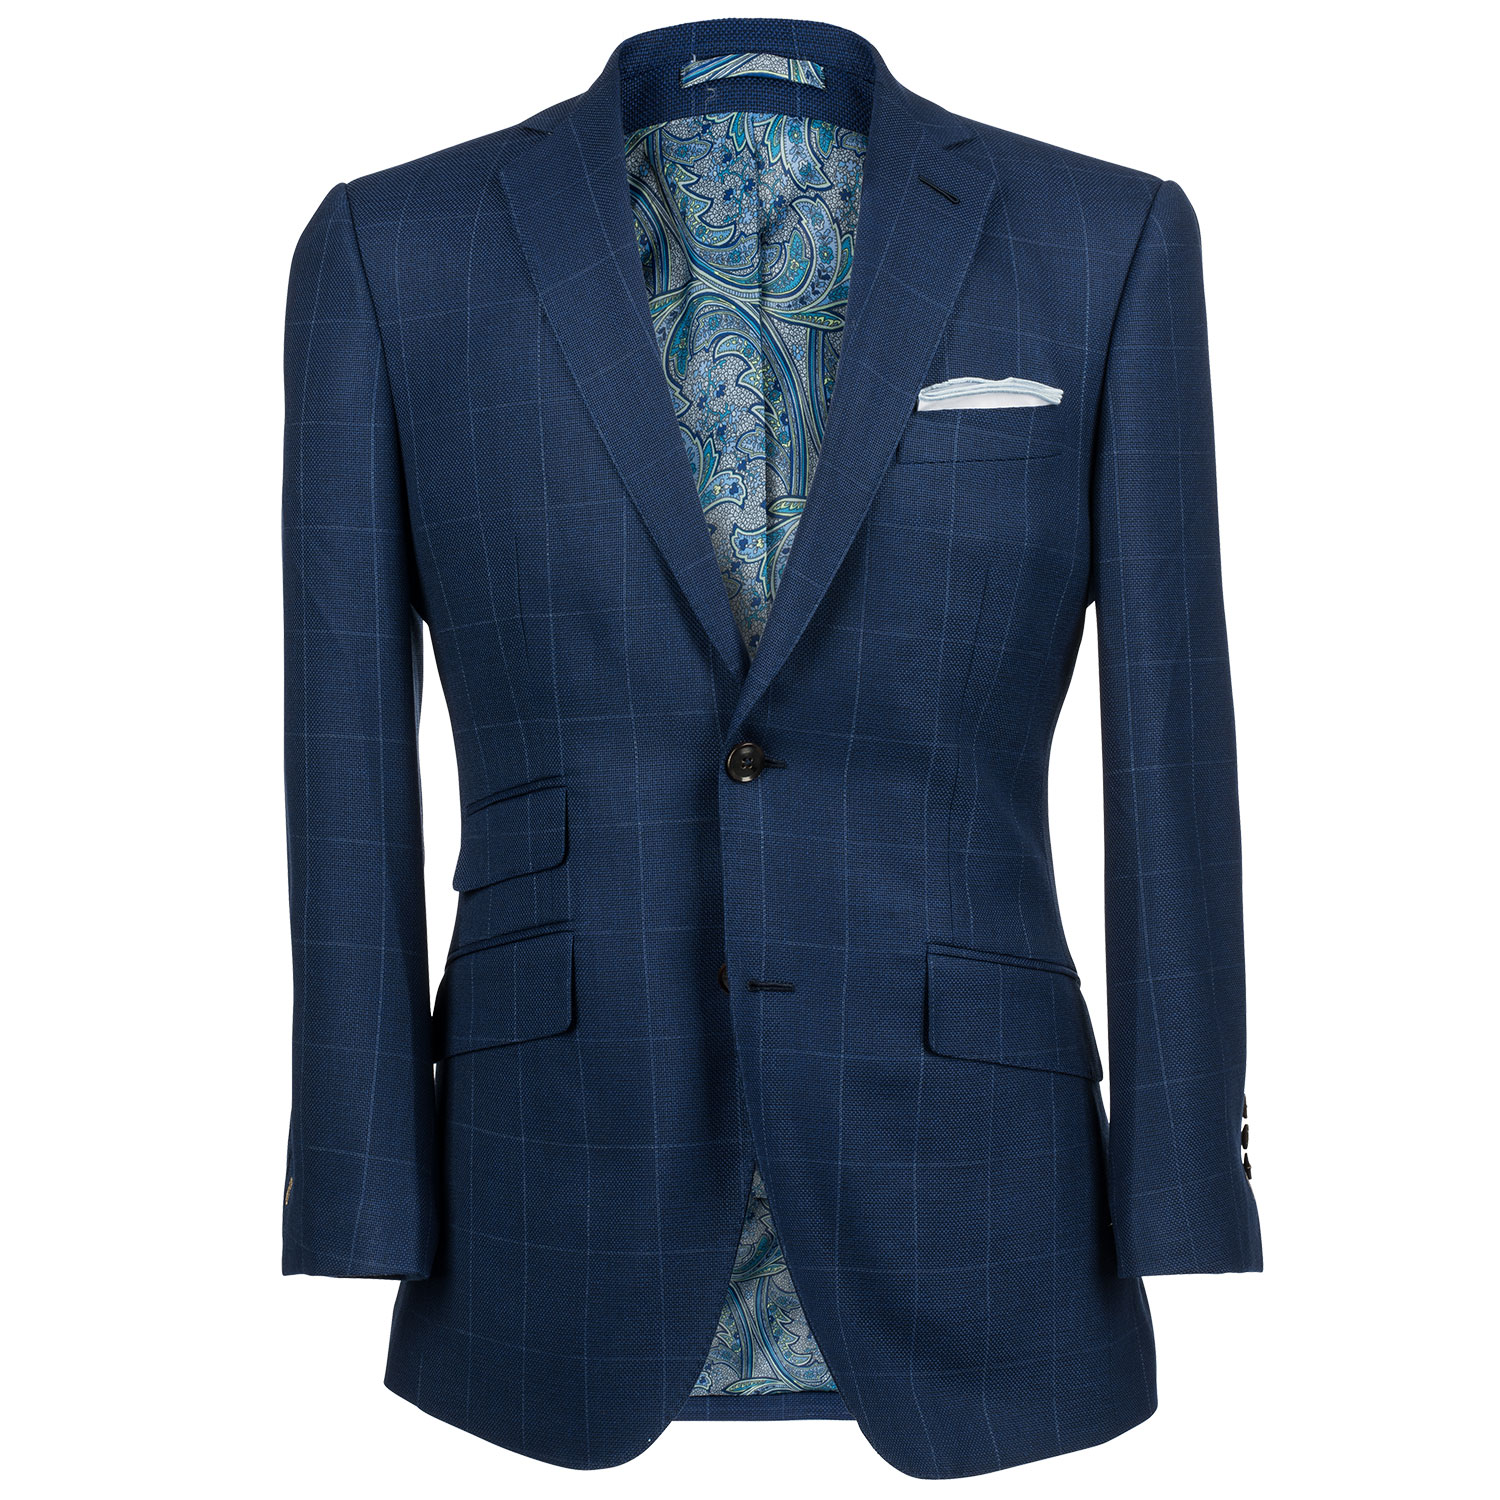 Made Suits Notched Lapel Suit Navy Blue Blue WindowPane side.jpg